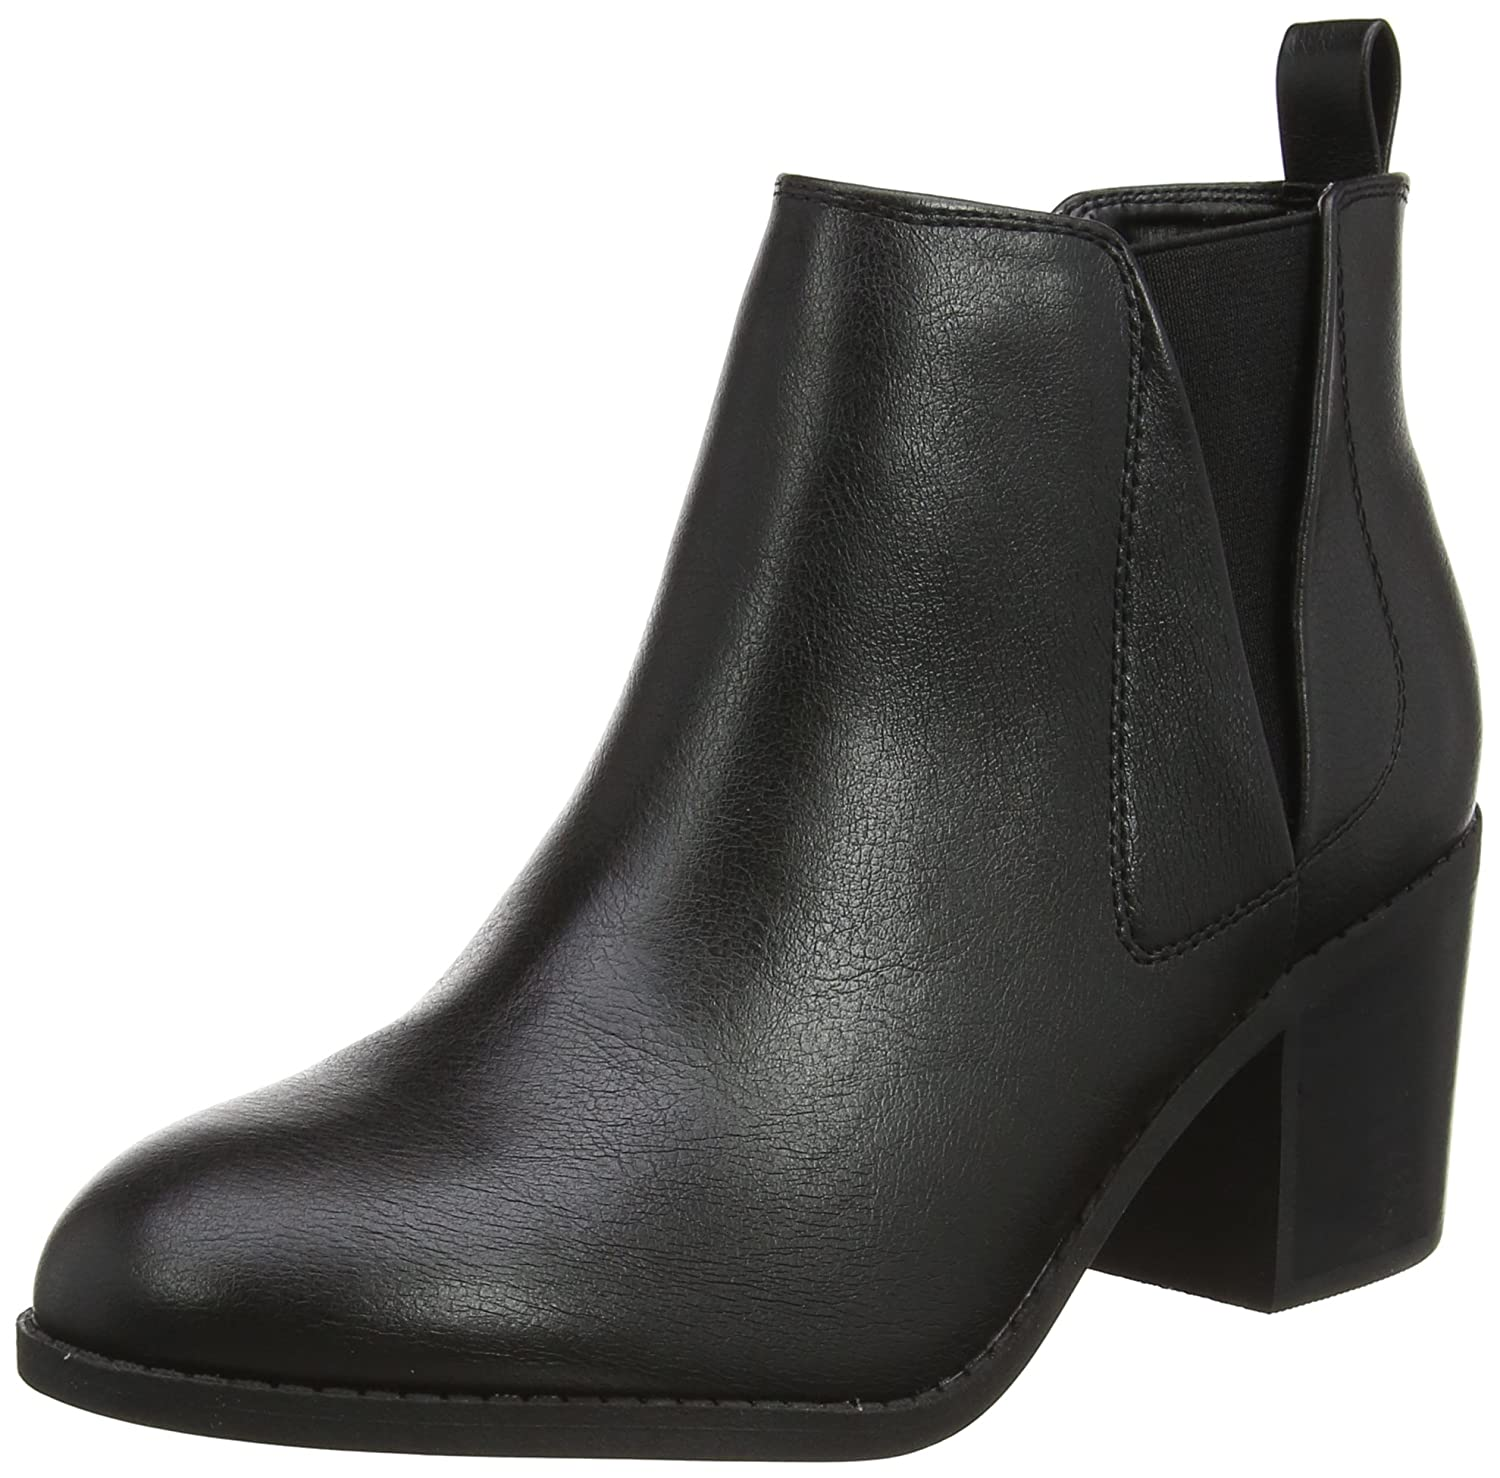 Office 15210 B01CRAY5RY Agenda Boots W, Chelsea Boots Femme Noir (Noir) 7aa3bf5 - automaticcouplings.space